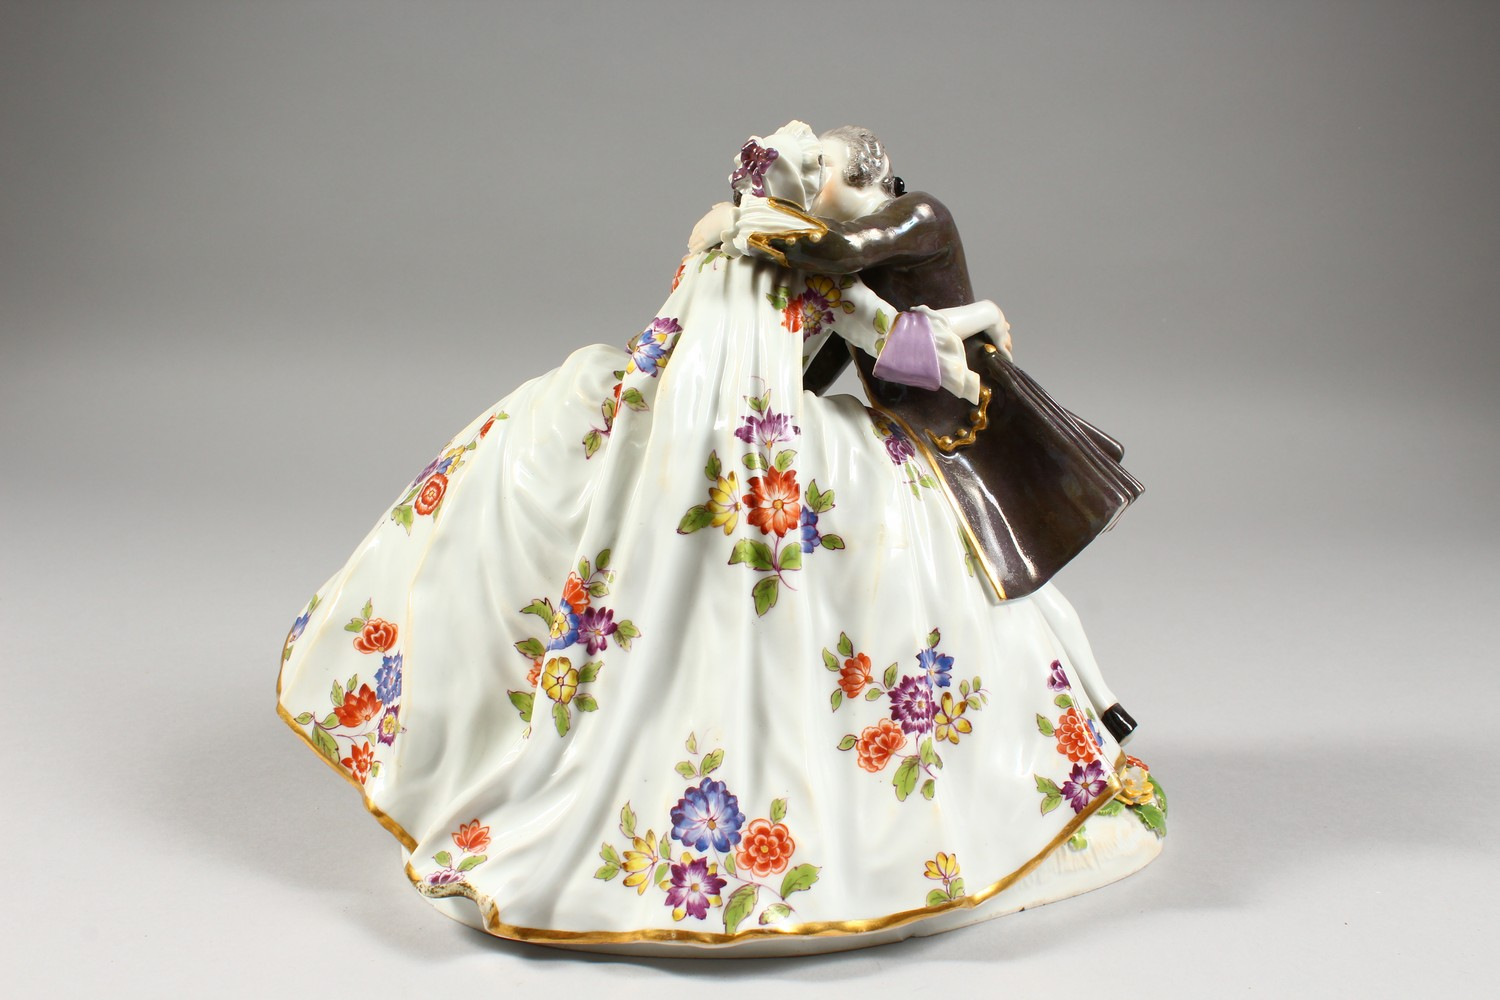 A GOOD LARGE MEISSEN FIGURE GROUP OF A GALLANT AND LADY, in a romantic embrace, the lady with a - Image 4 of 7